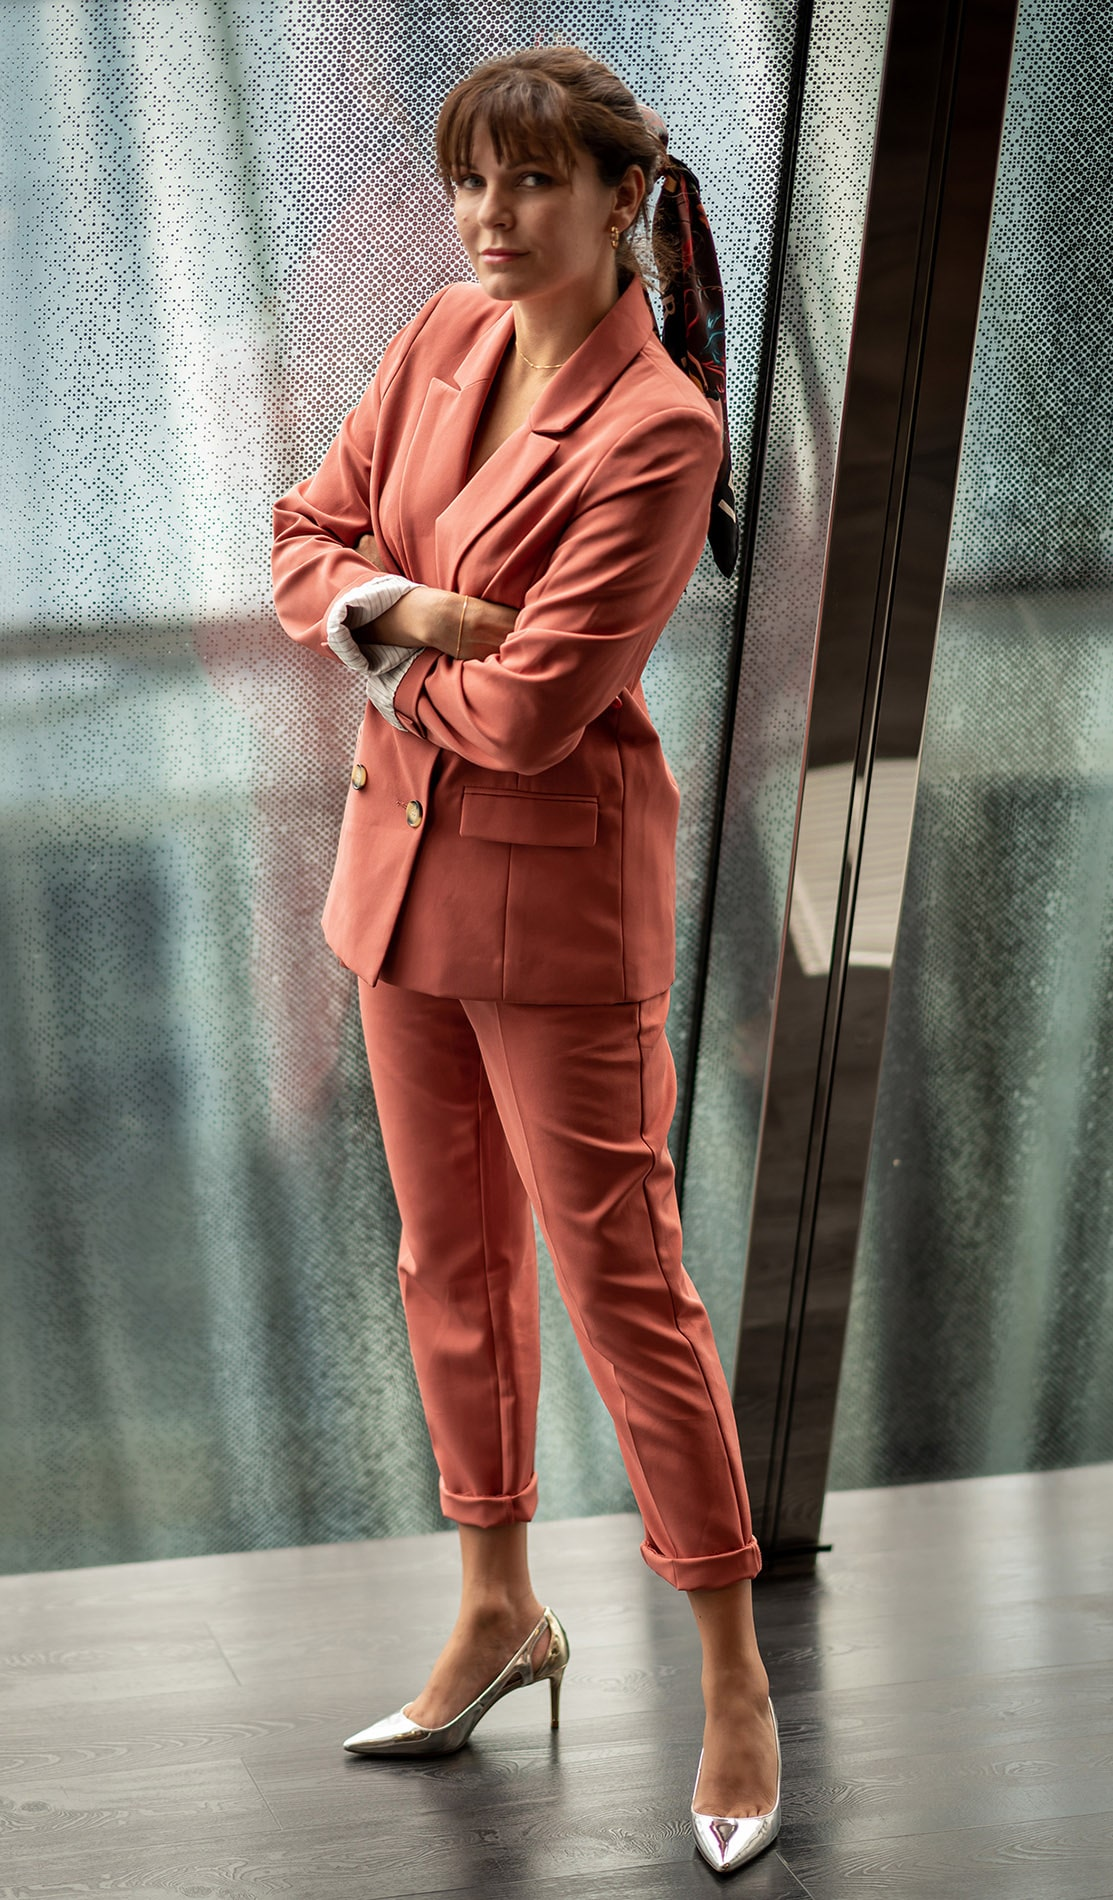 elo in peach coloured suit in the lounge at the westin hamburg